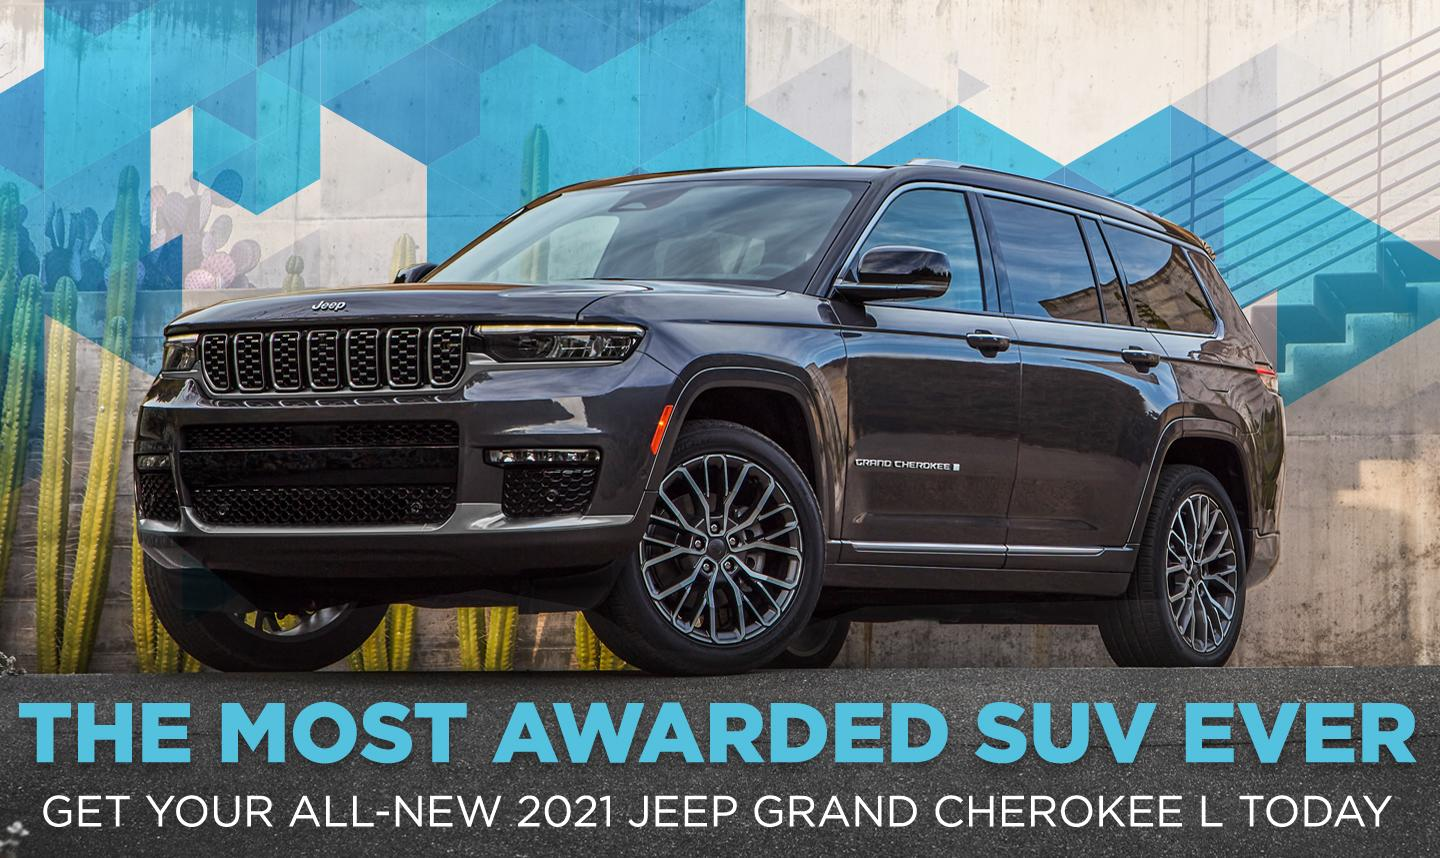 Get Your All-New 2021 Jeep Grand Cherokee L Today